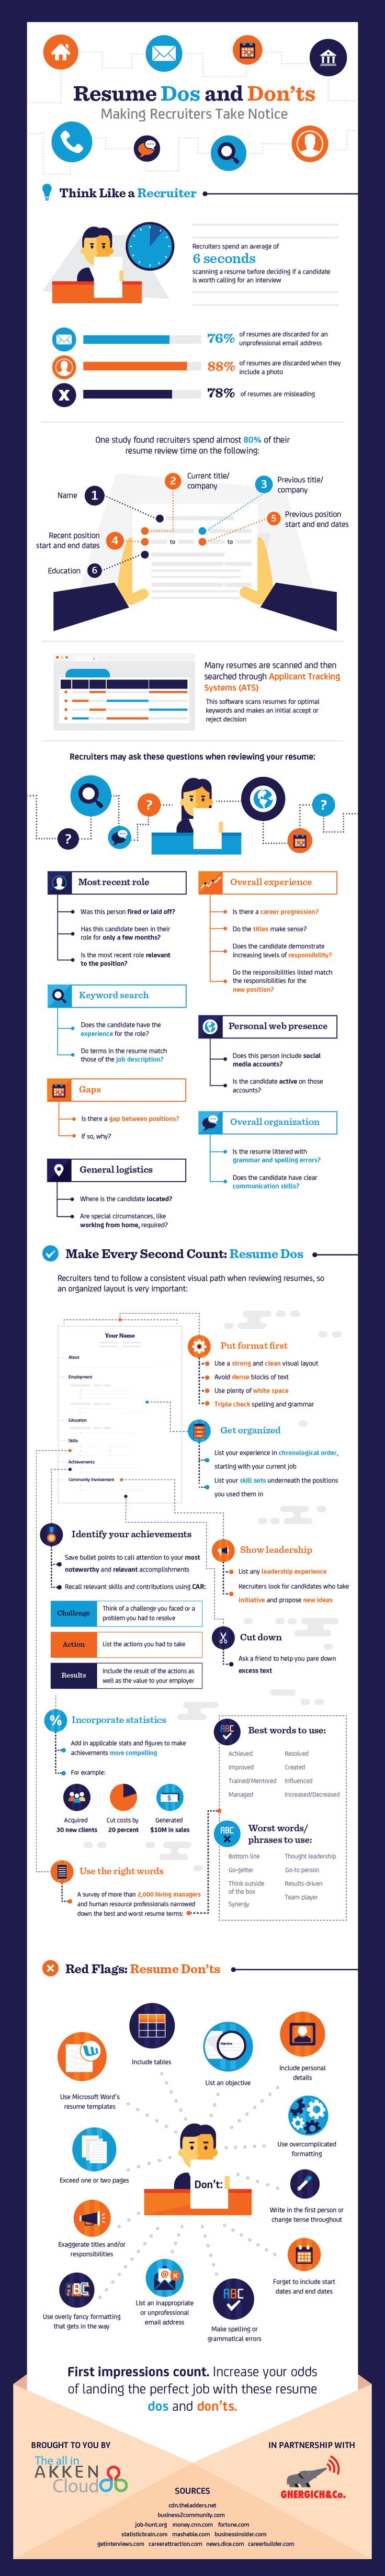 Resume Dos and Don'ts: Making Recruiters Take Notice (Infographic) | iBrandStudio https://vimeo.com/xtremefreelance